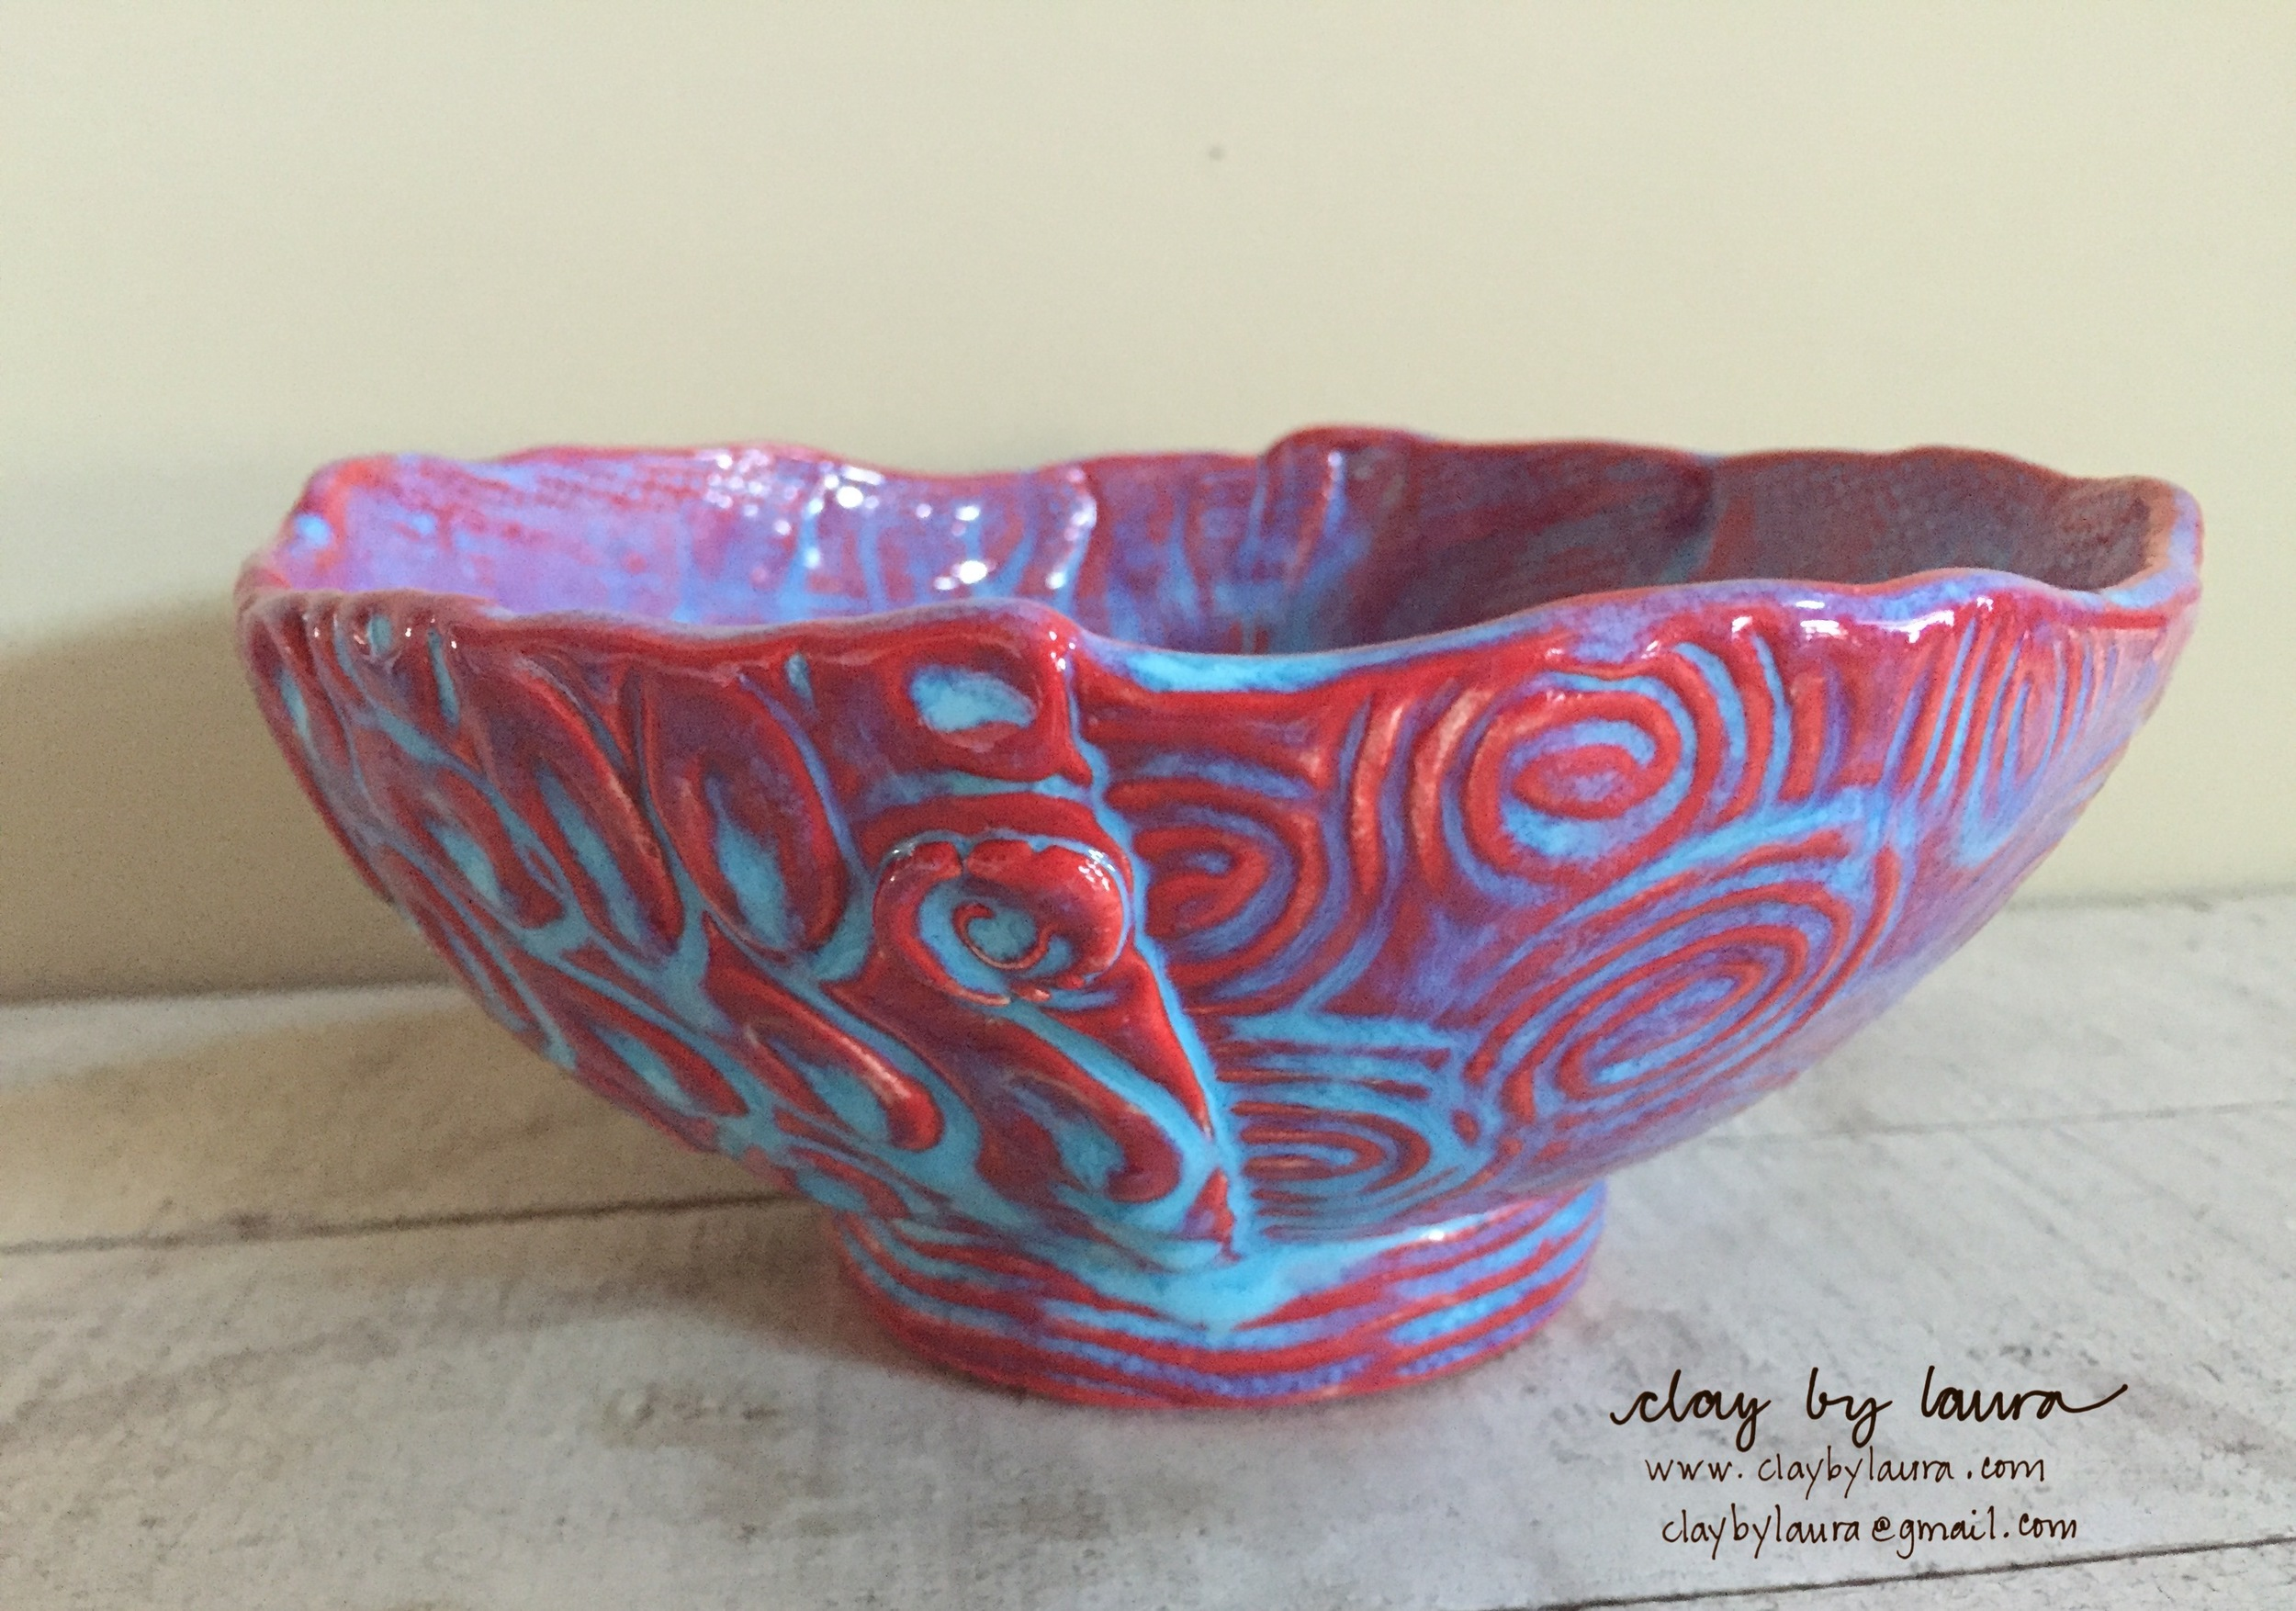 This color combination of Red underglaze and Bluebell glaze makes me happy. I reach for this bowl for my daily morning cereal or yogurt and granola!